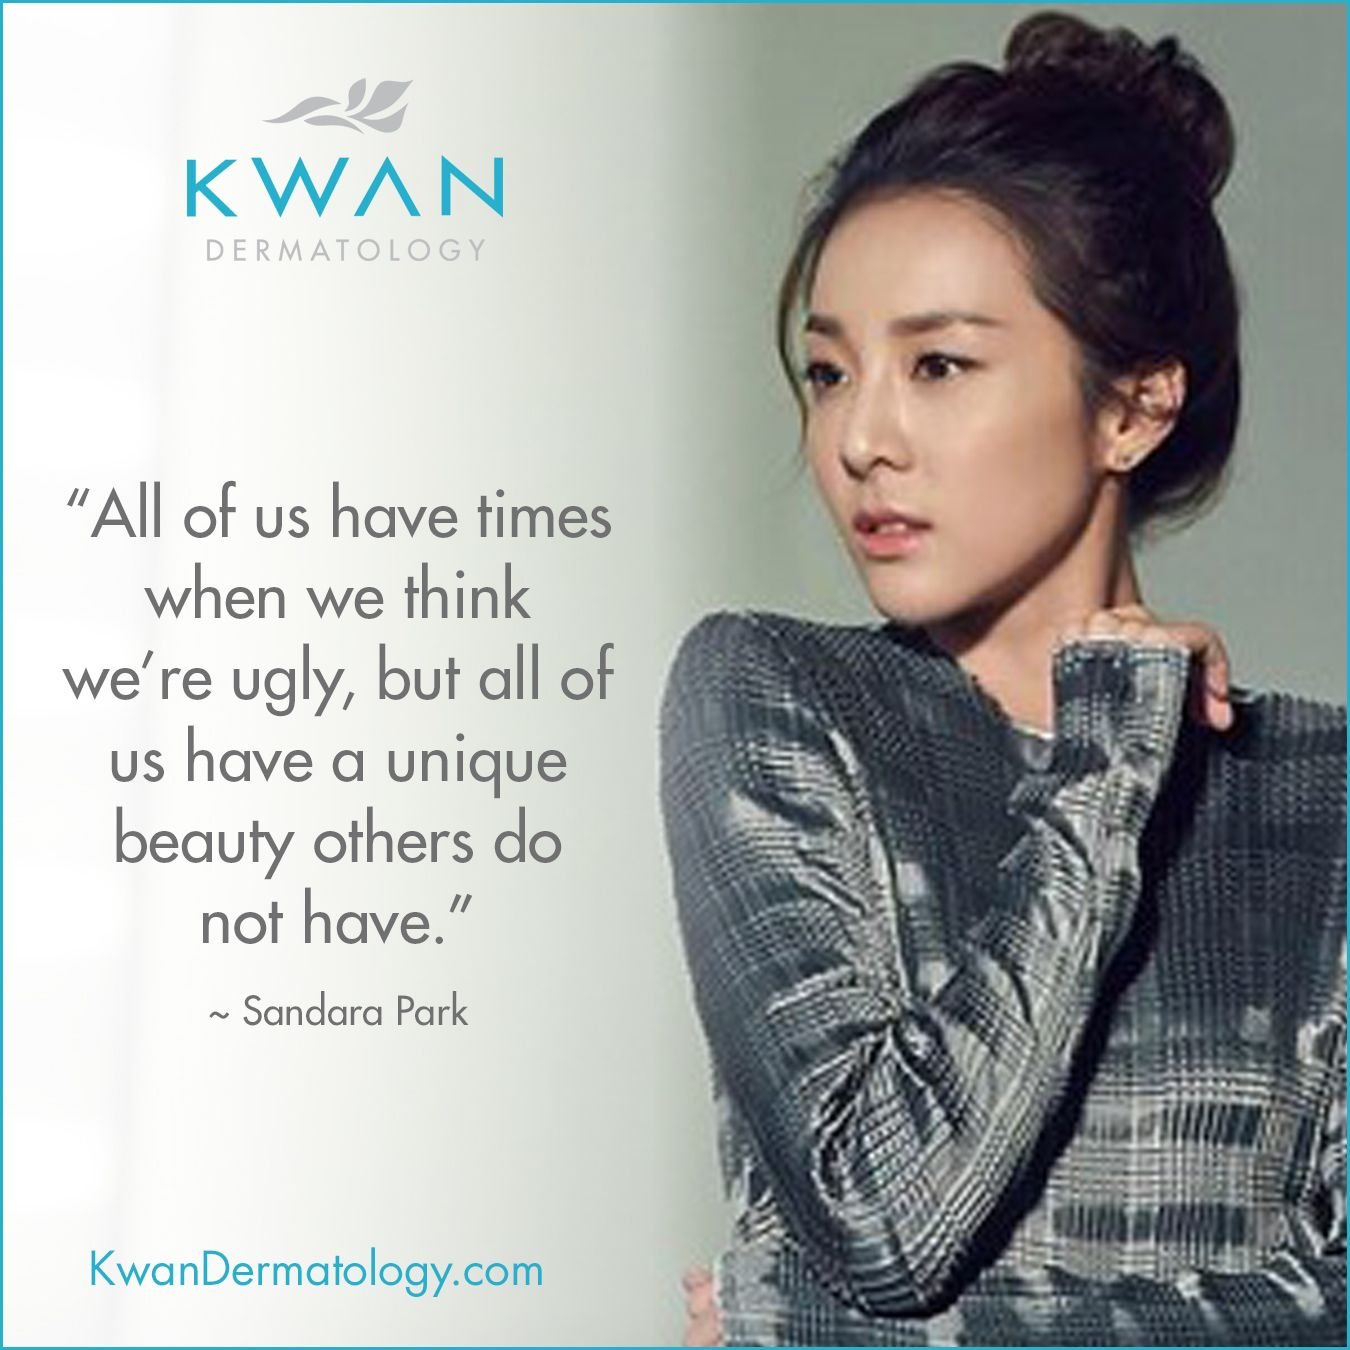 The Kwan Dermatology teams encourages you to embrace your diversity